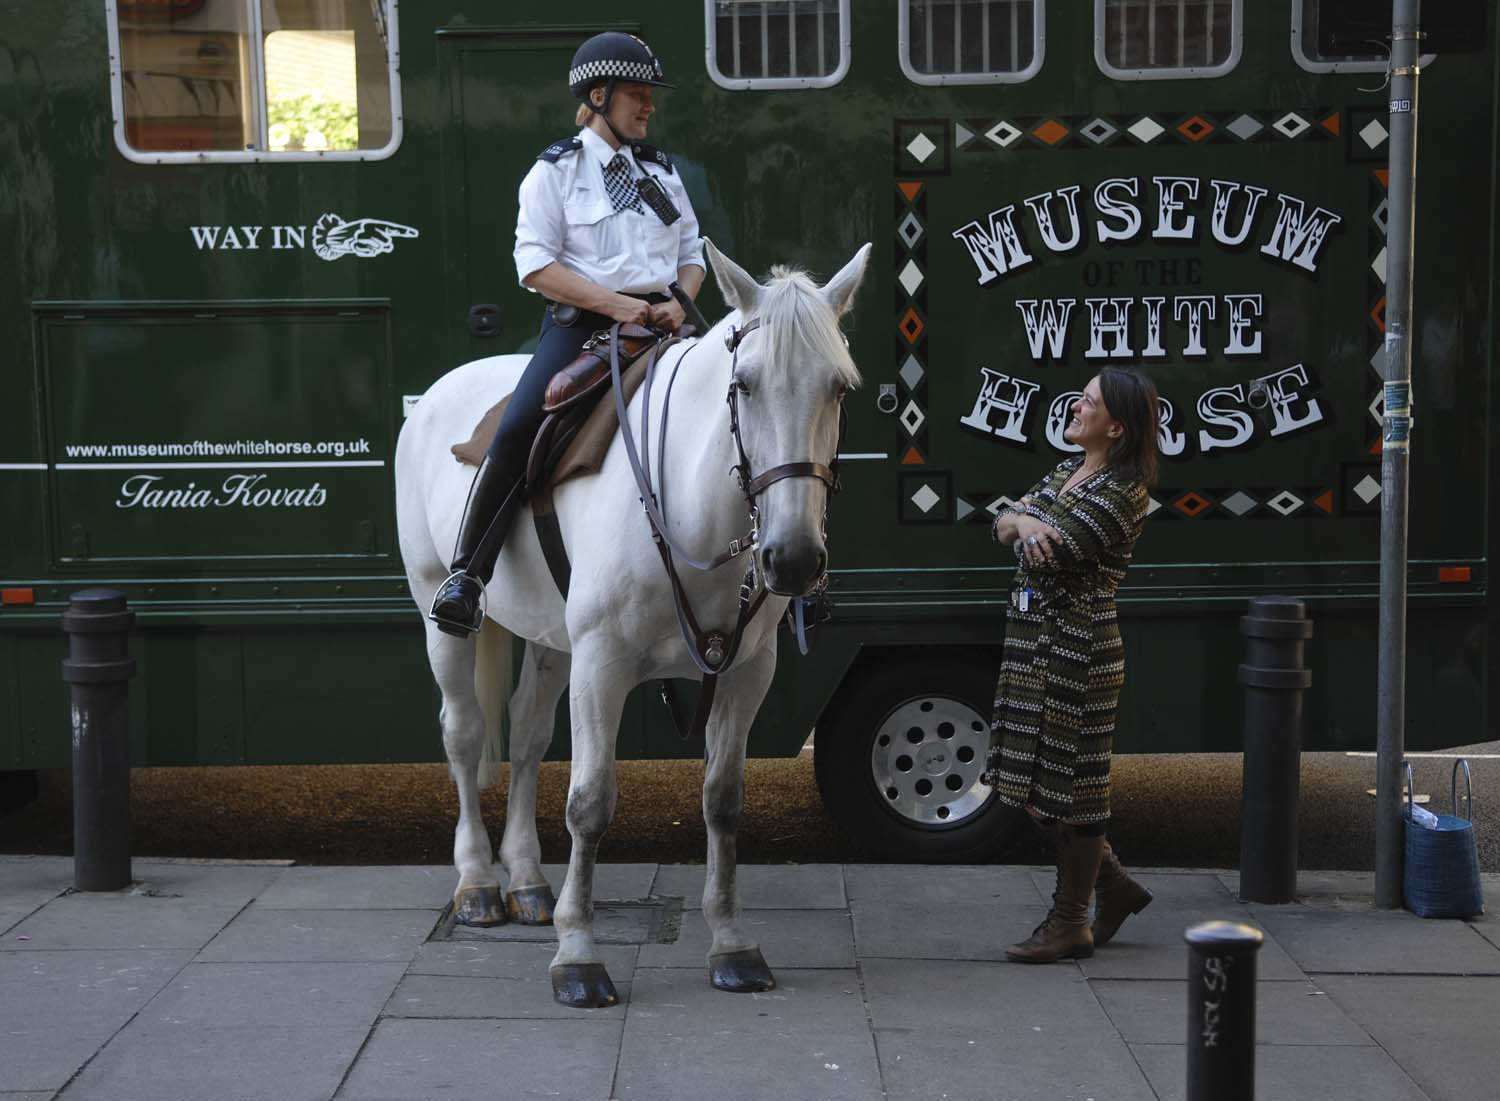 Tania Kovats and white police horse in front of The Museum of the White Horse